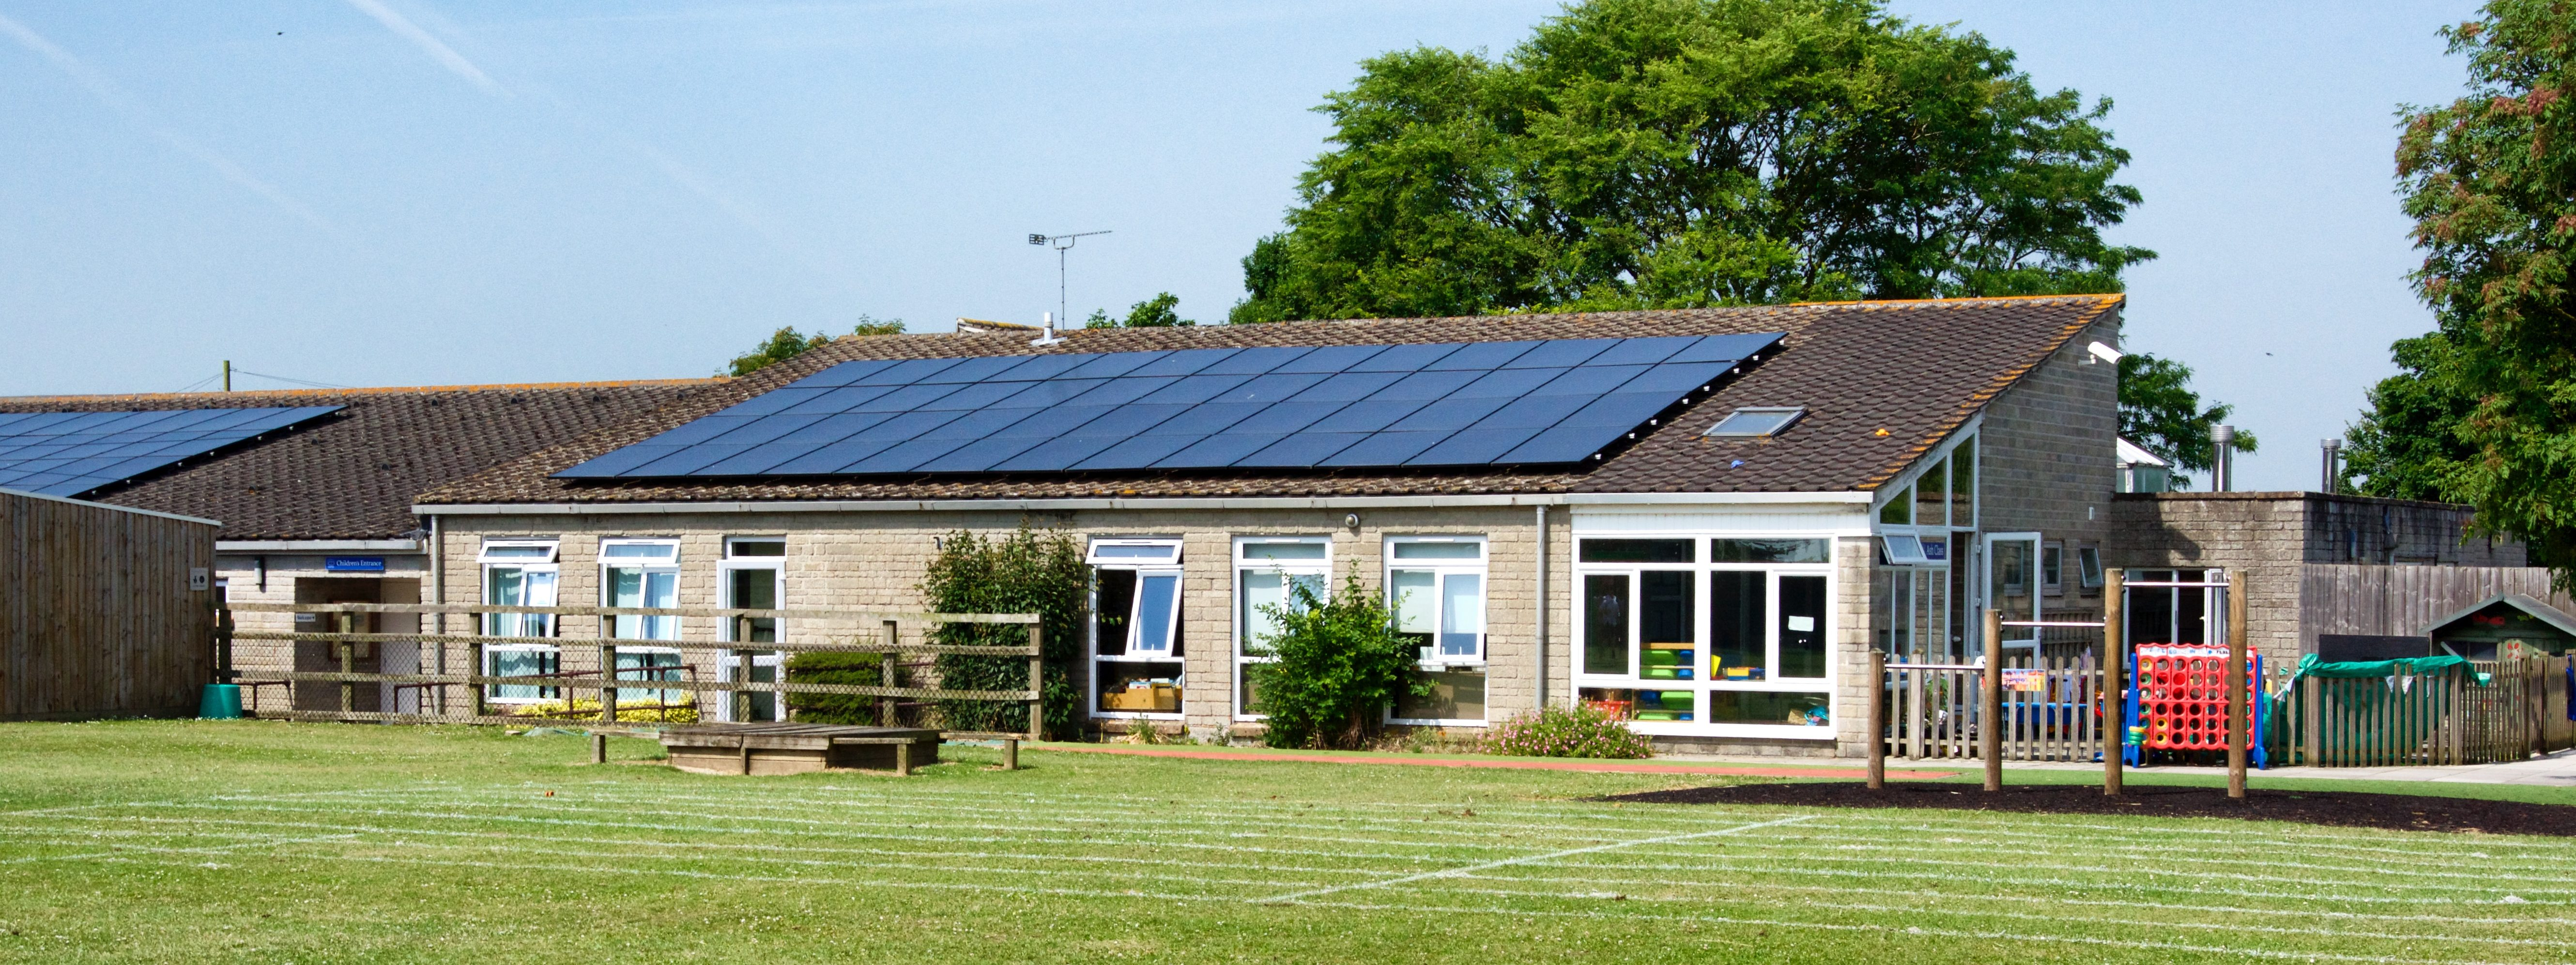 Long Sutton Primary School, Somerset